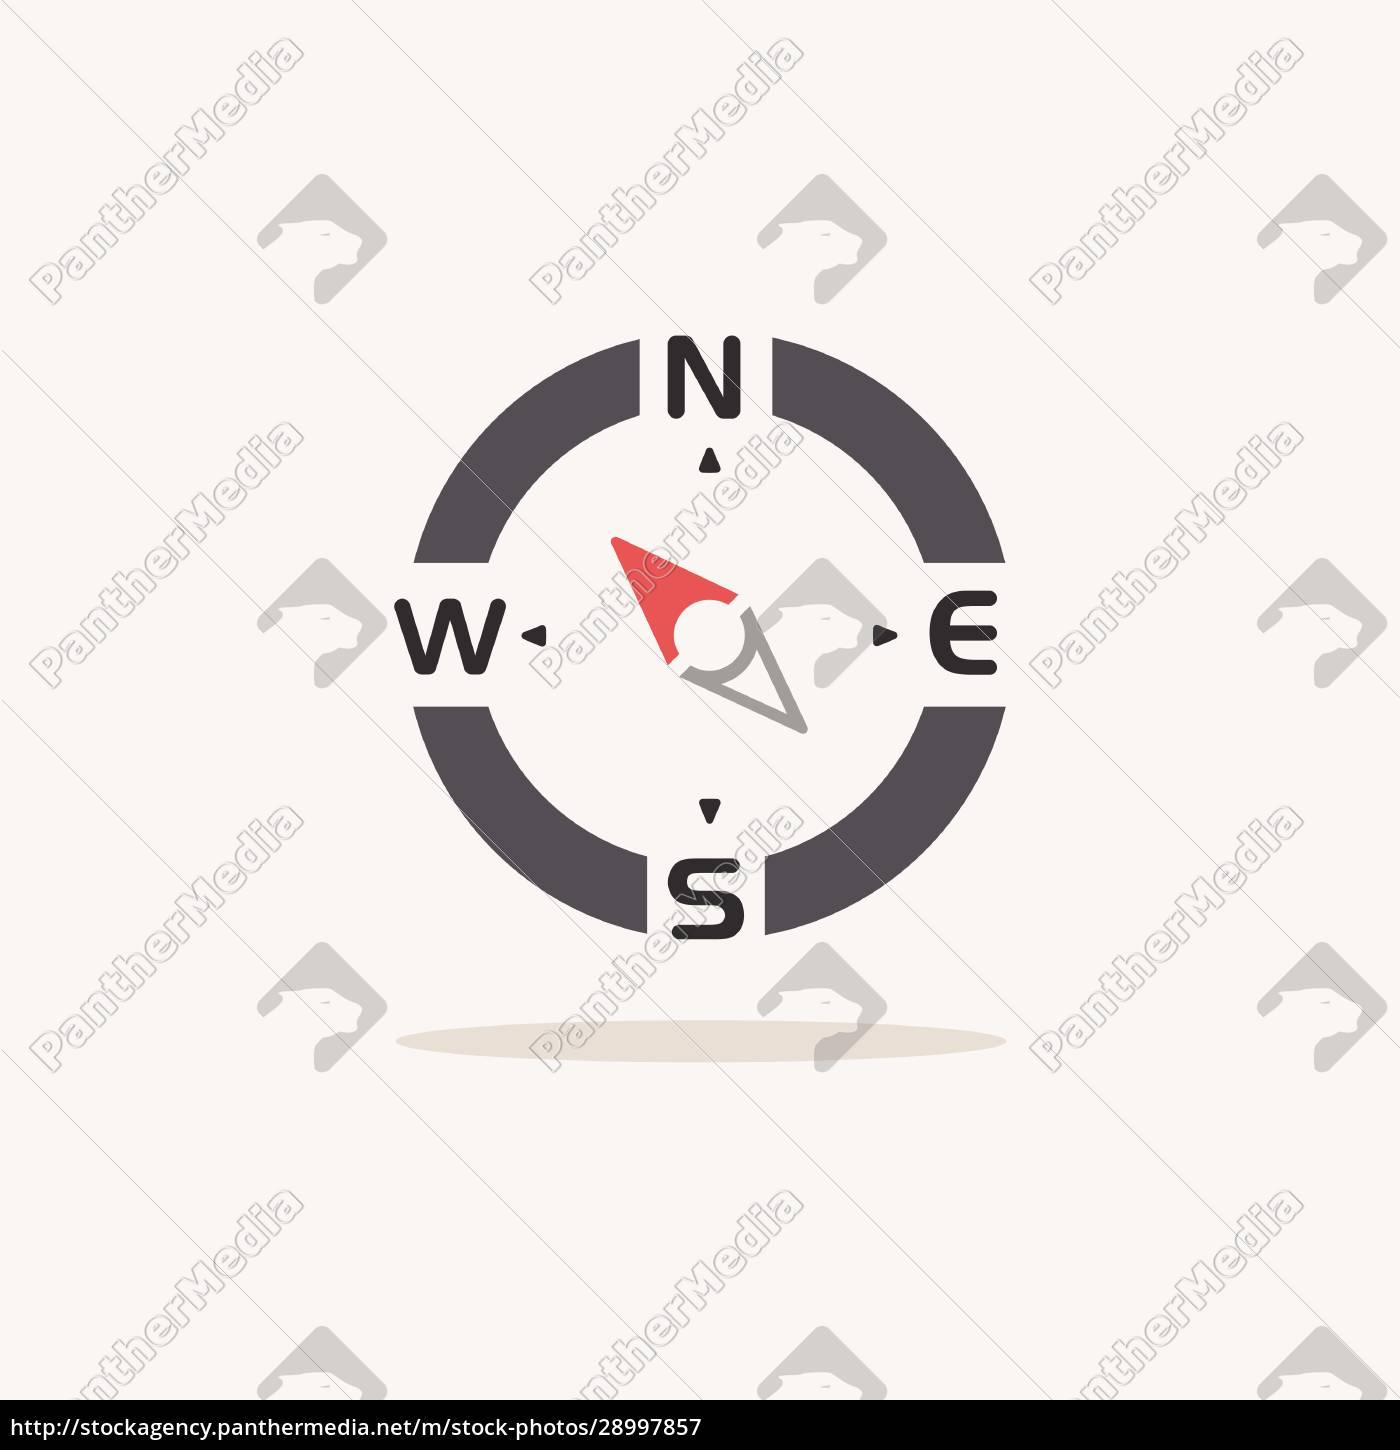 compass., north, west, direction., color, icon - 28997857